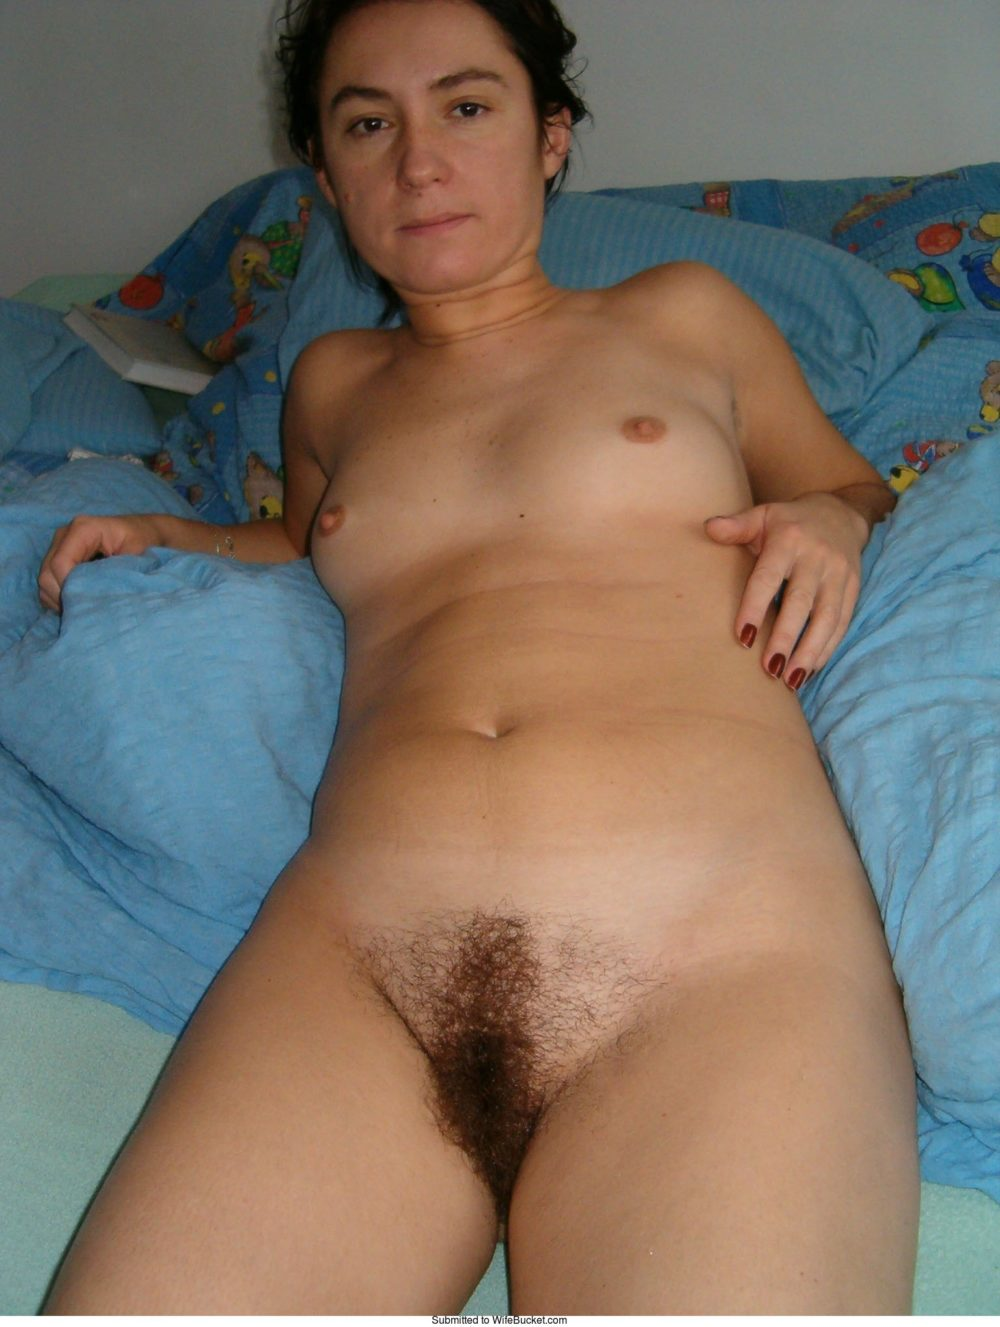 Nude wife pic bluff beav